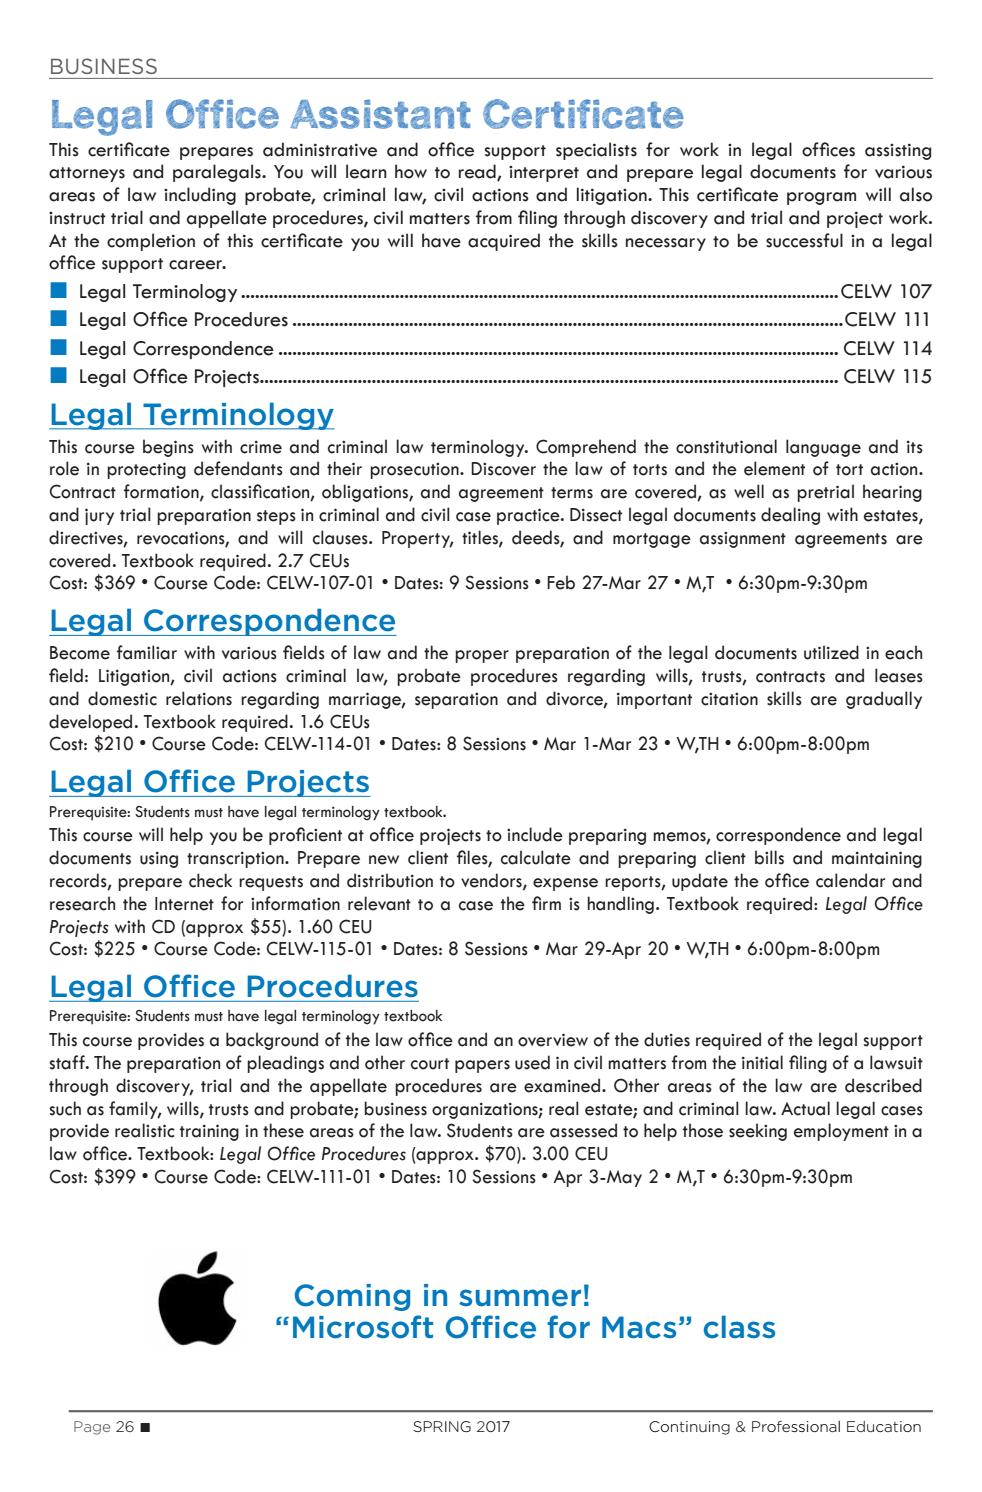 How to prepare a legal citation specialized legal vocabulary array spring 2017 catalog by ocean county college issuu rh issuu fandeluxe Gallery